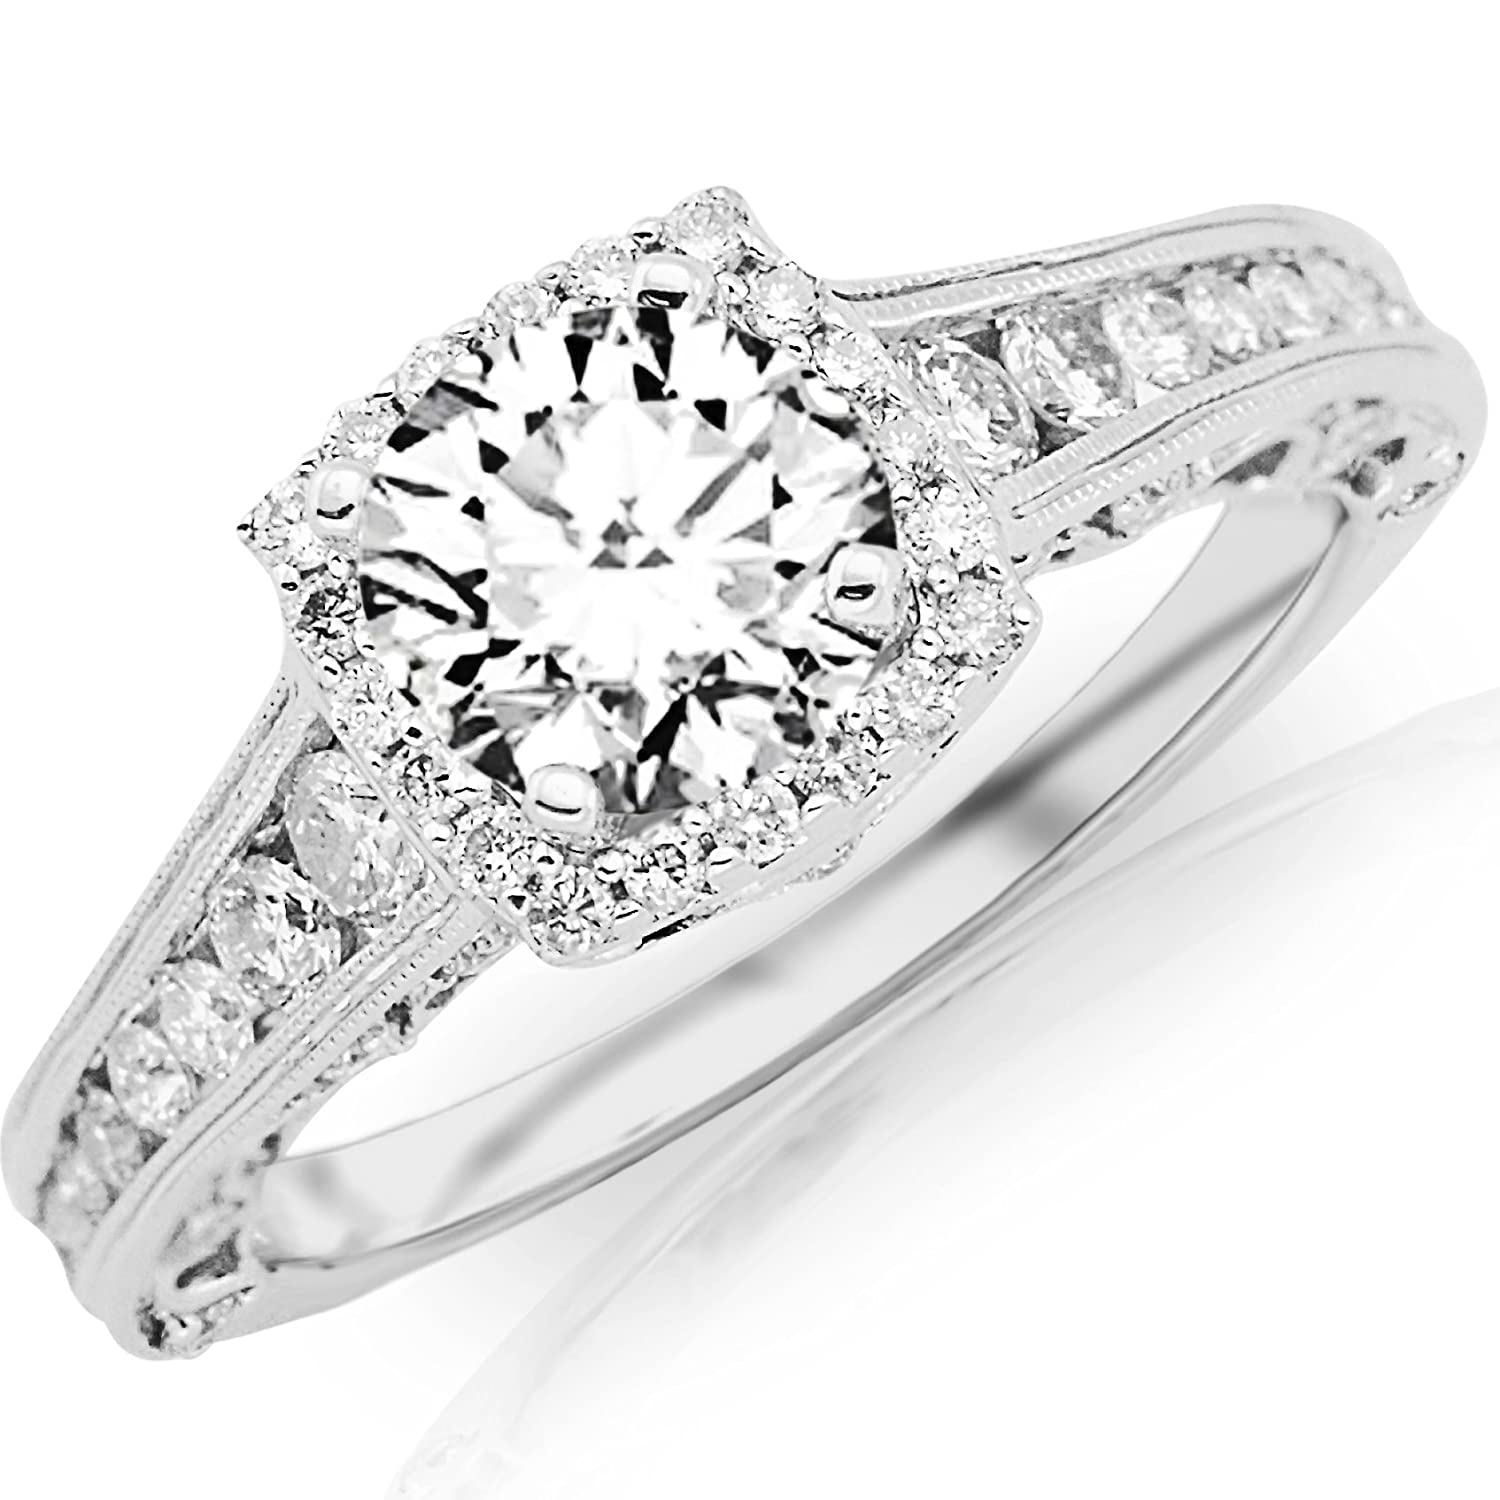 de best of beers diamond matvuk for beautiful awesome com wedding engagement rings women gorgeous us